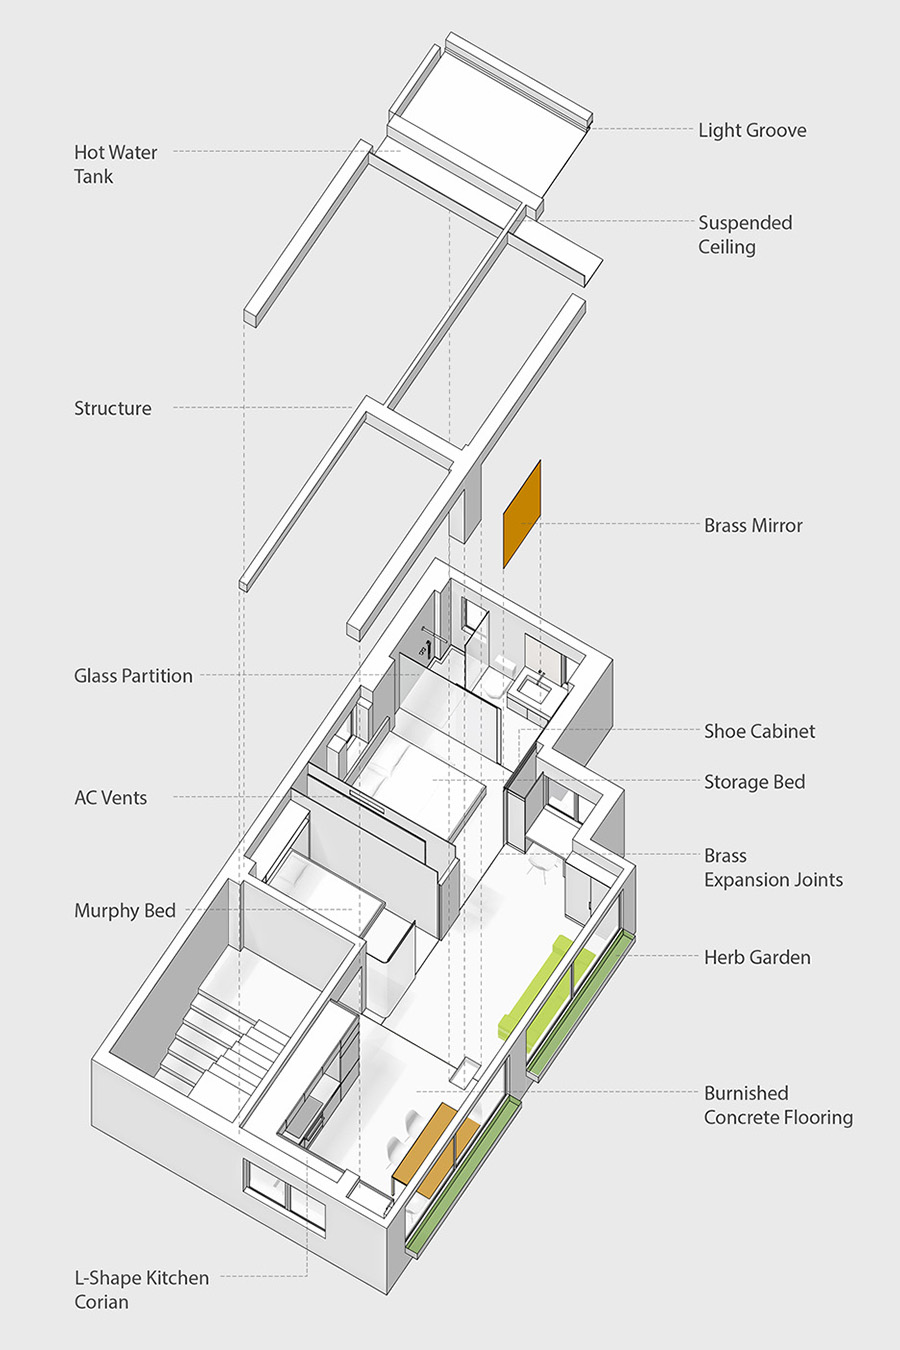 H-residence, rocker-lange architects, axonometric drawing, minimal apartment design Hong Kong, renovation of apartment in old walk-up building